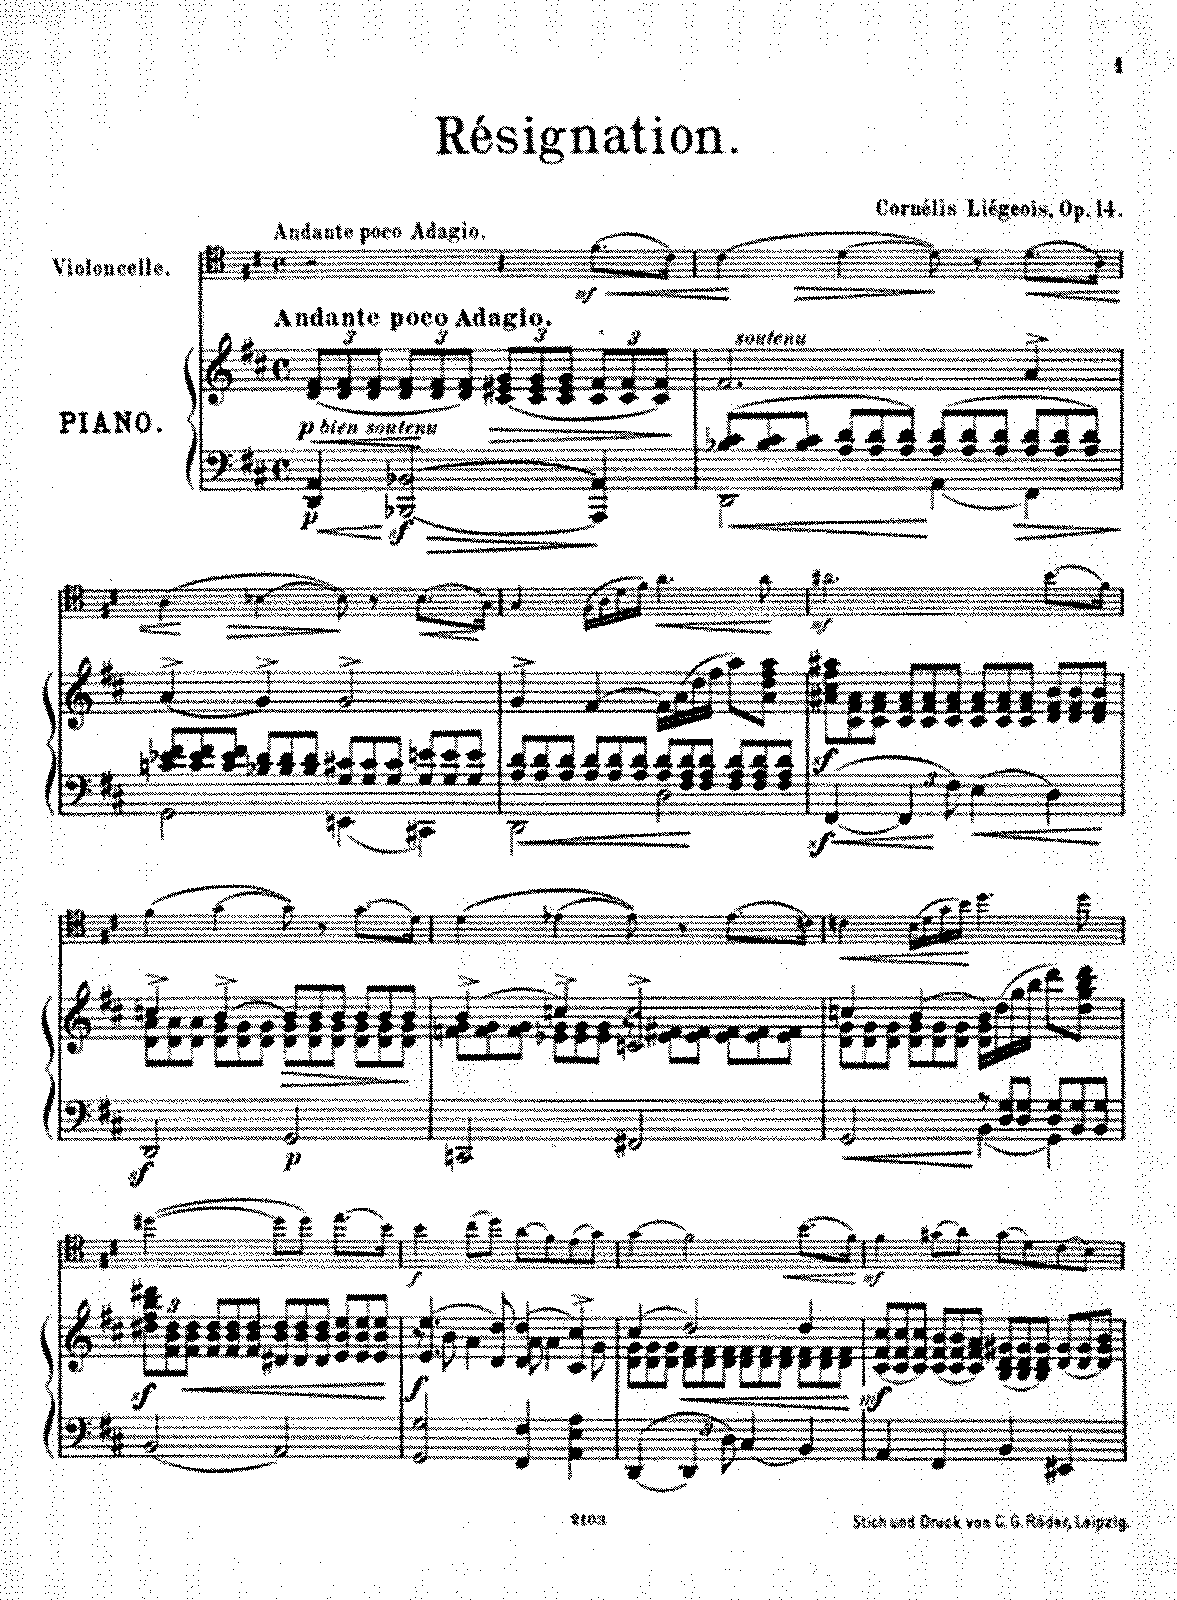 PMLP124807-Liegeois - Resignation Op14 for cello and piano.pdf